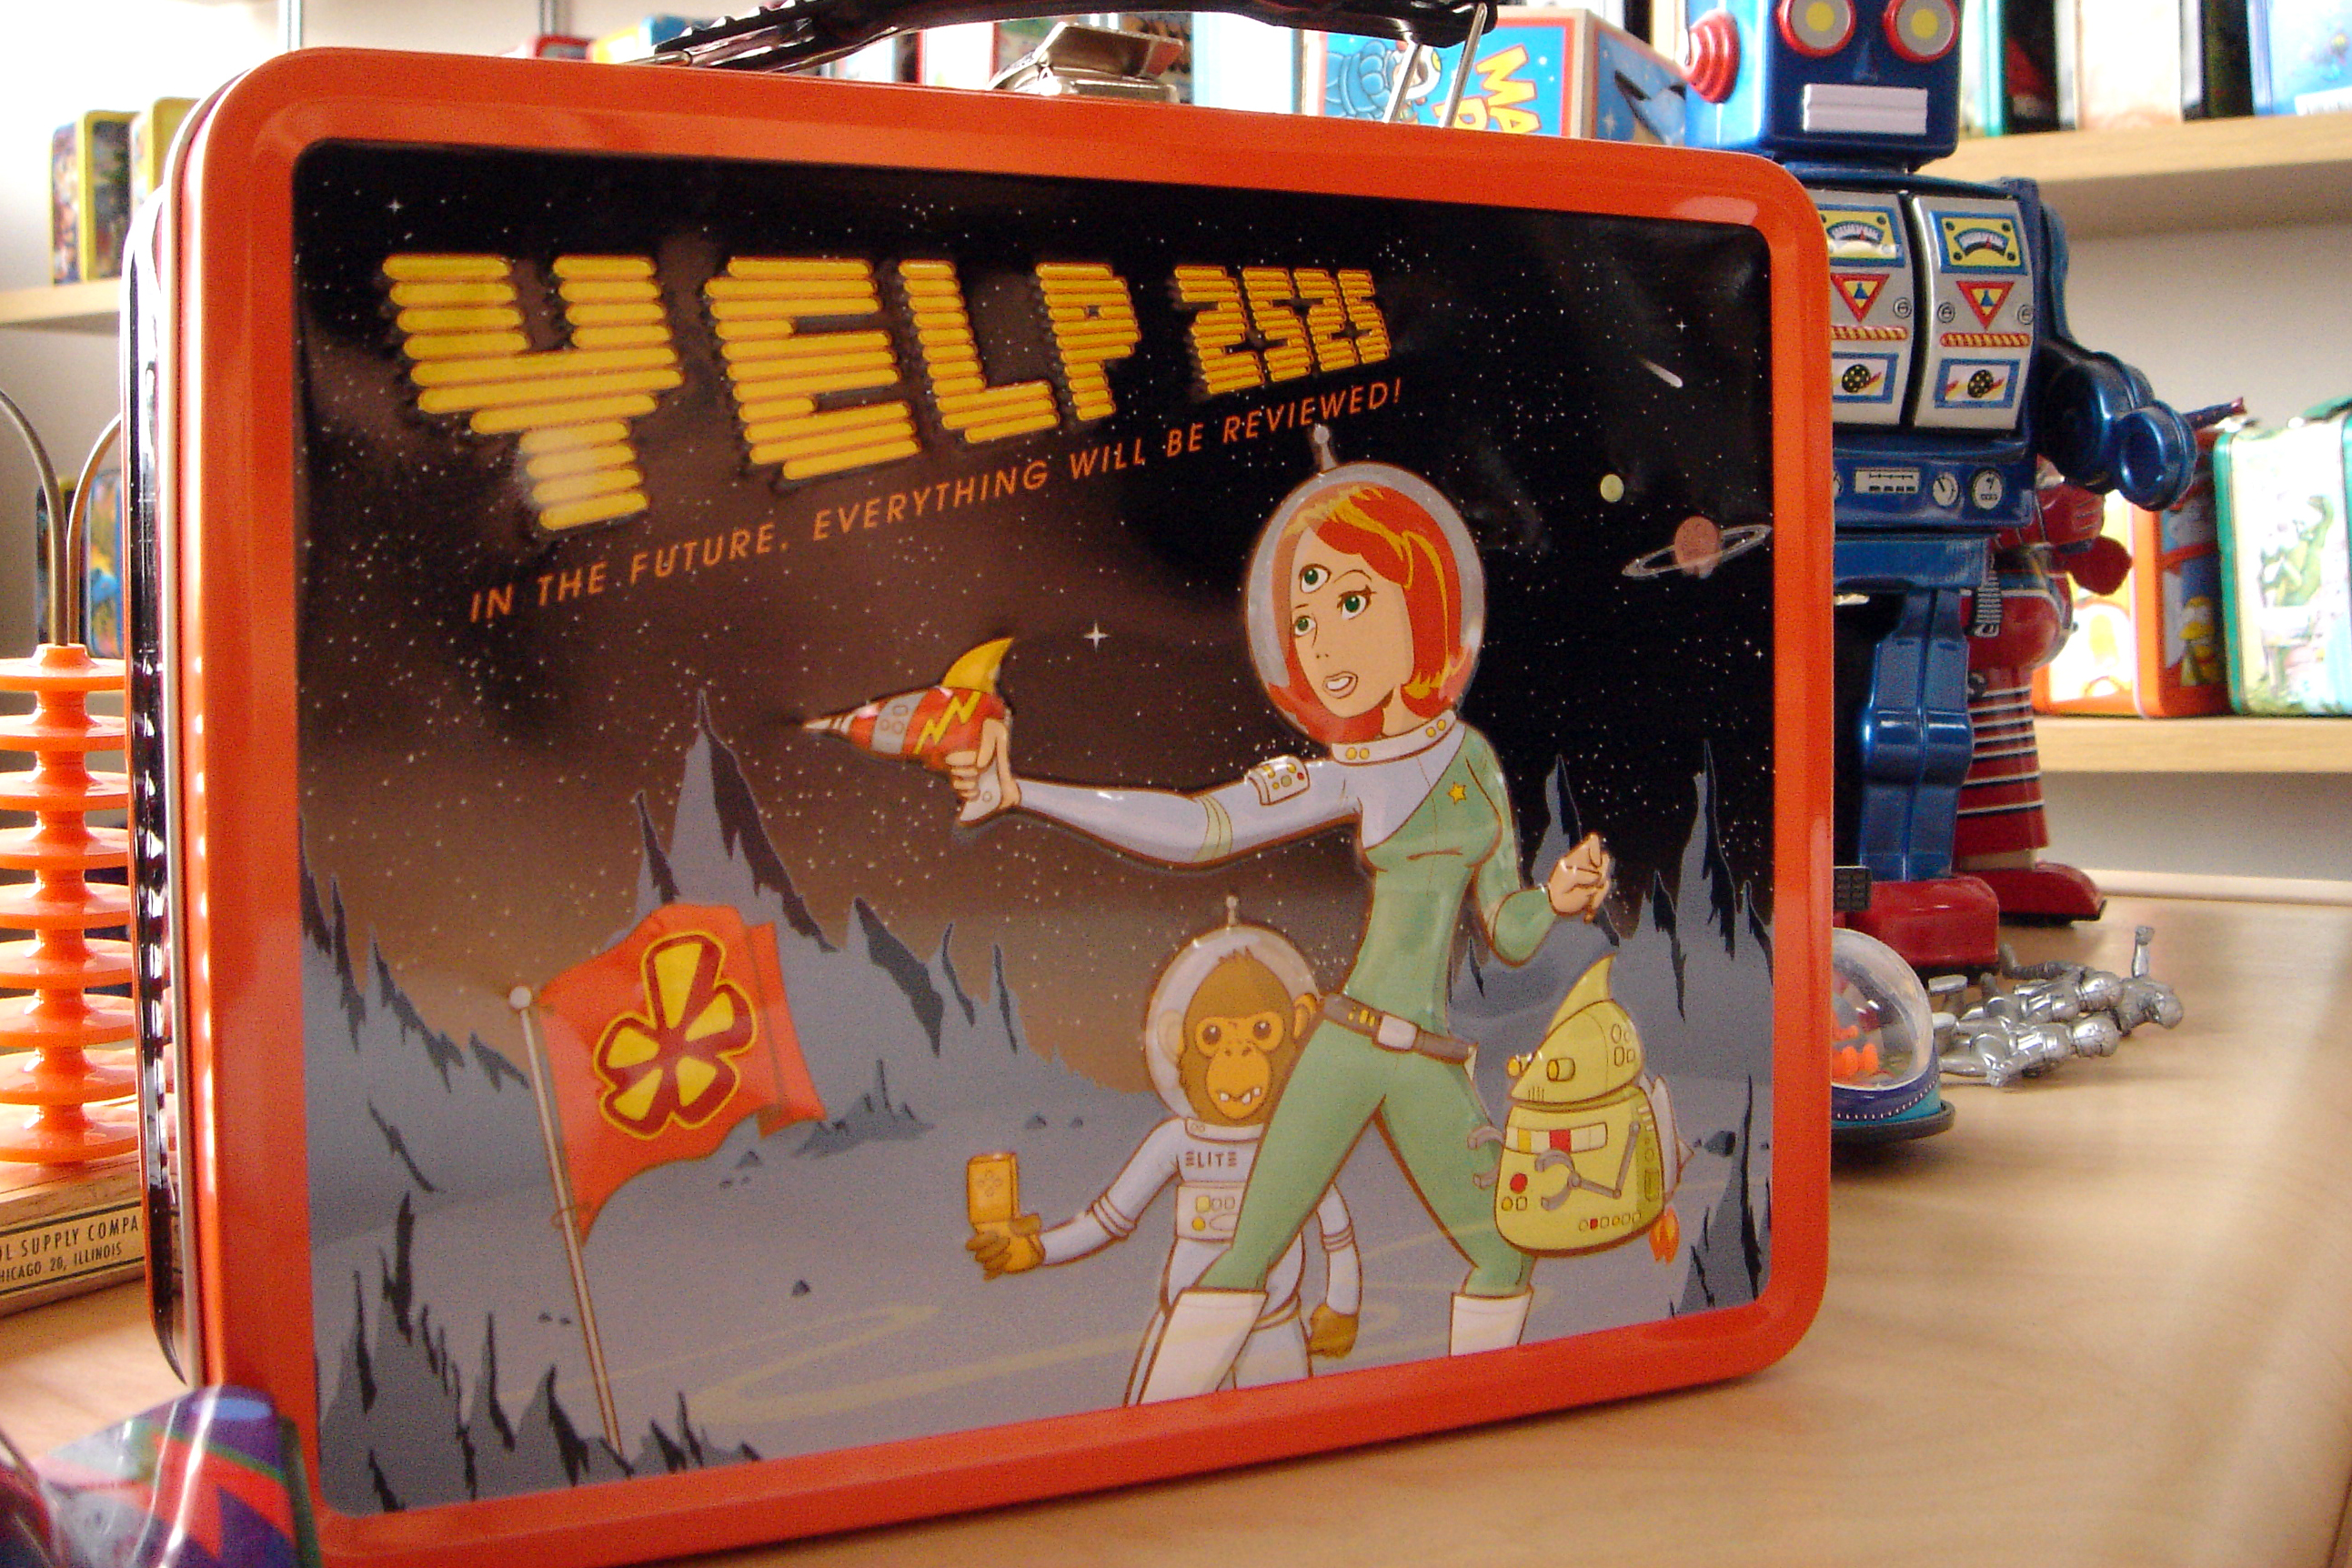 A Yelp lunchbox declares that 'in the future, everything will be reviewed.'